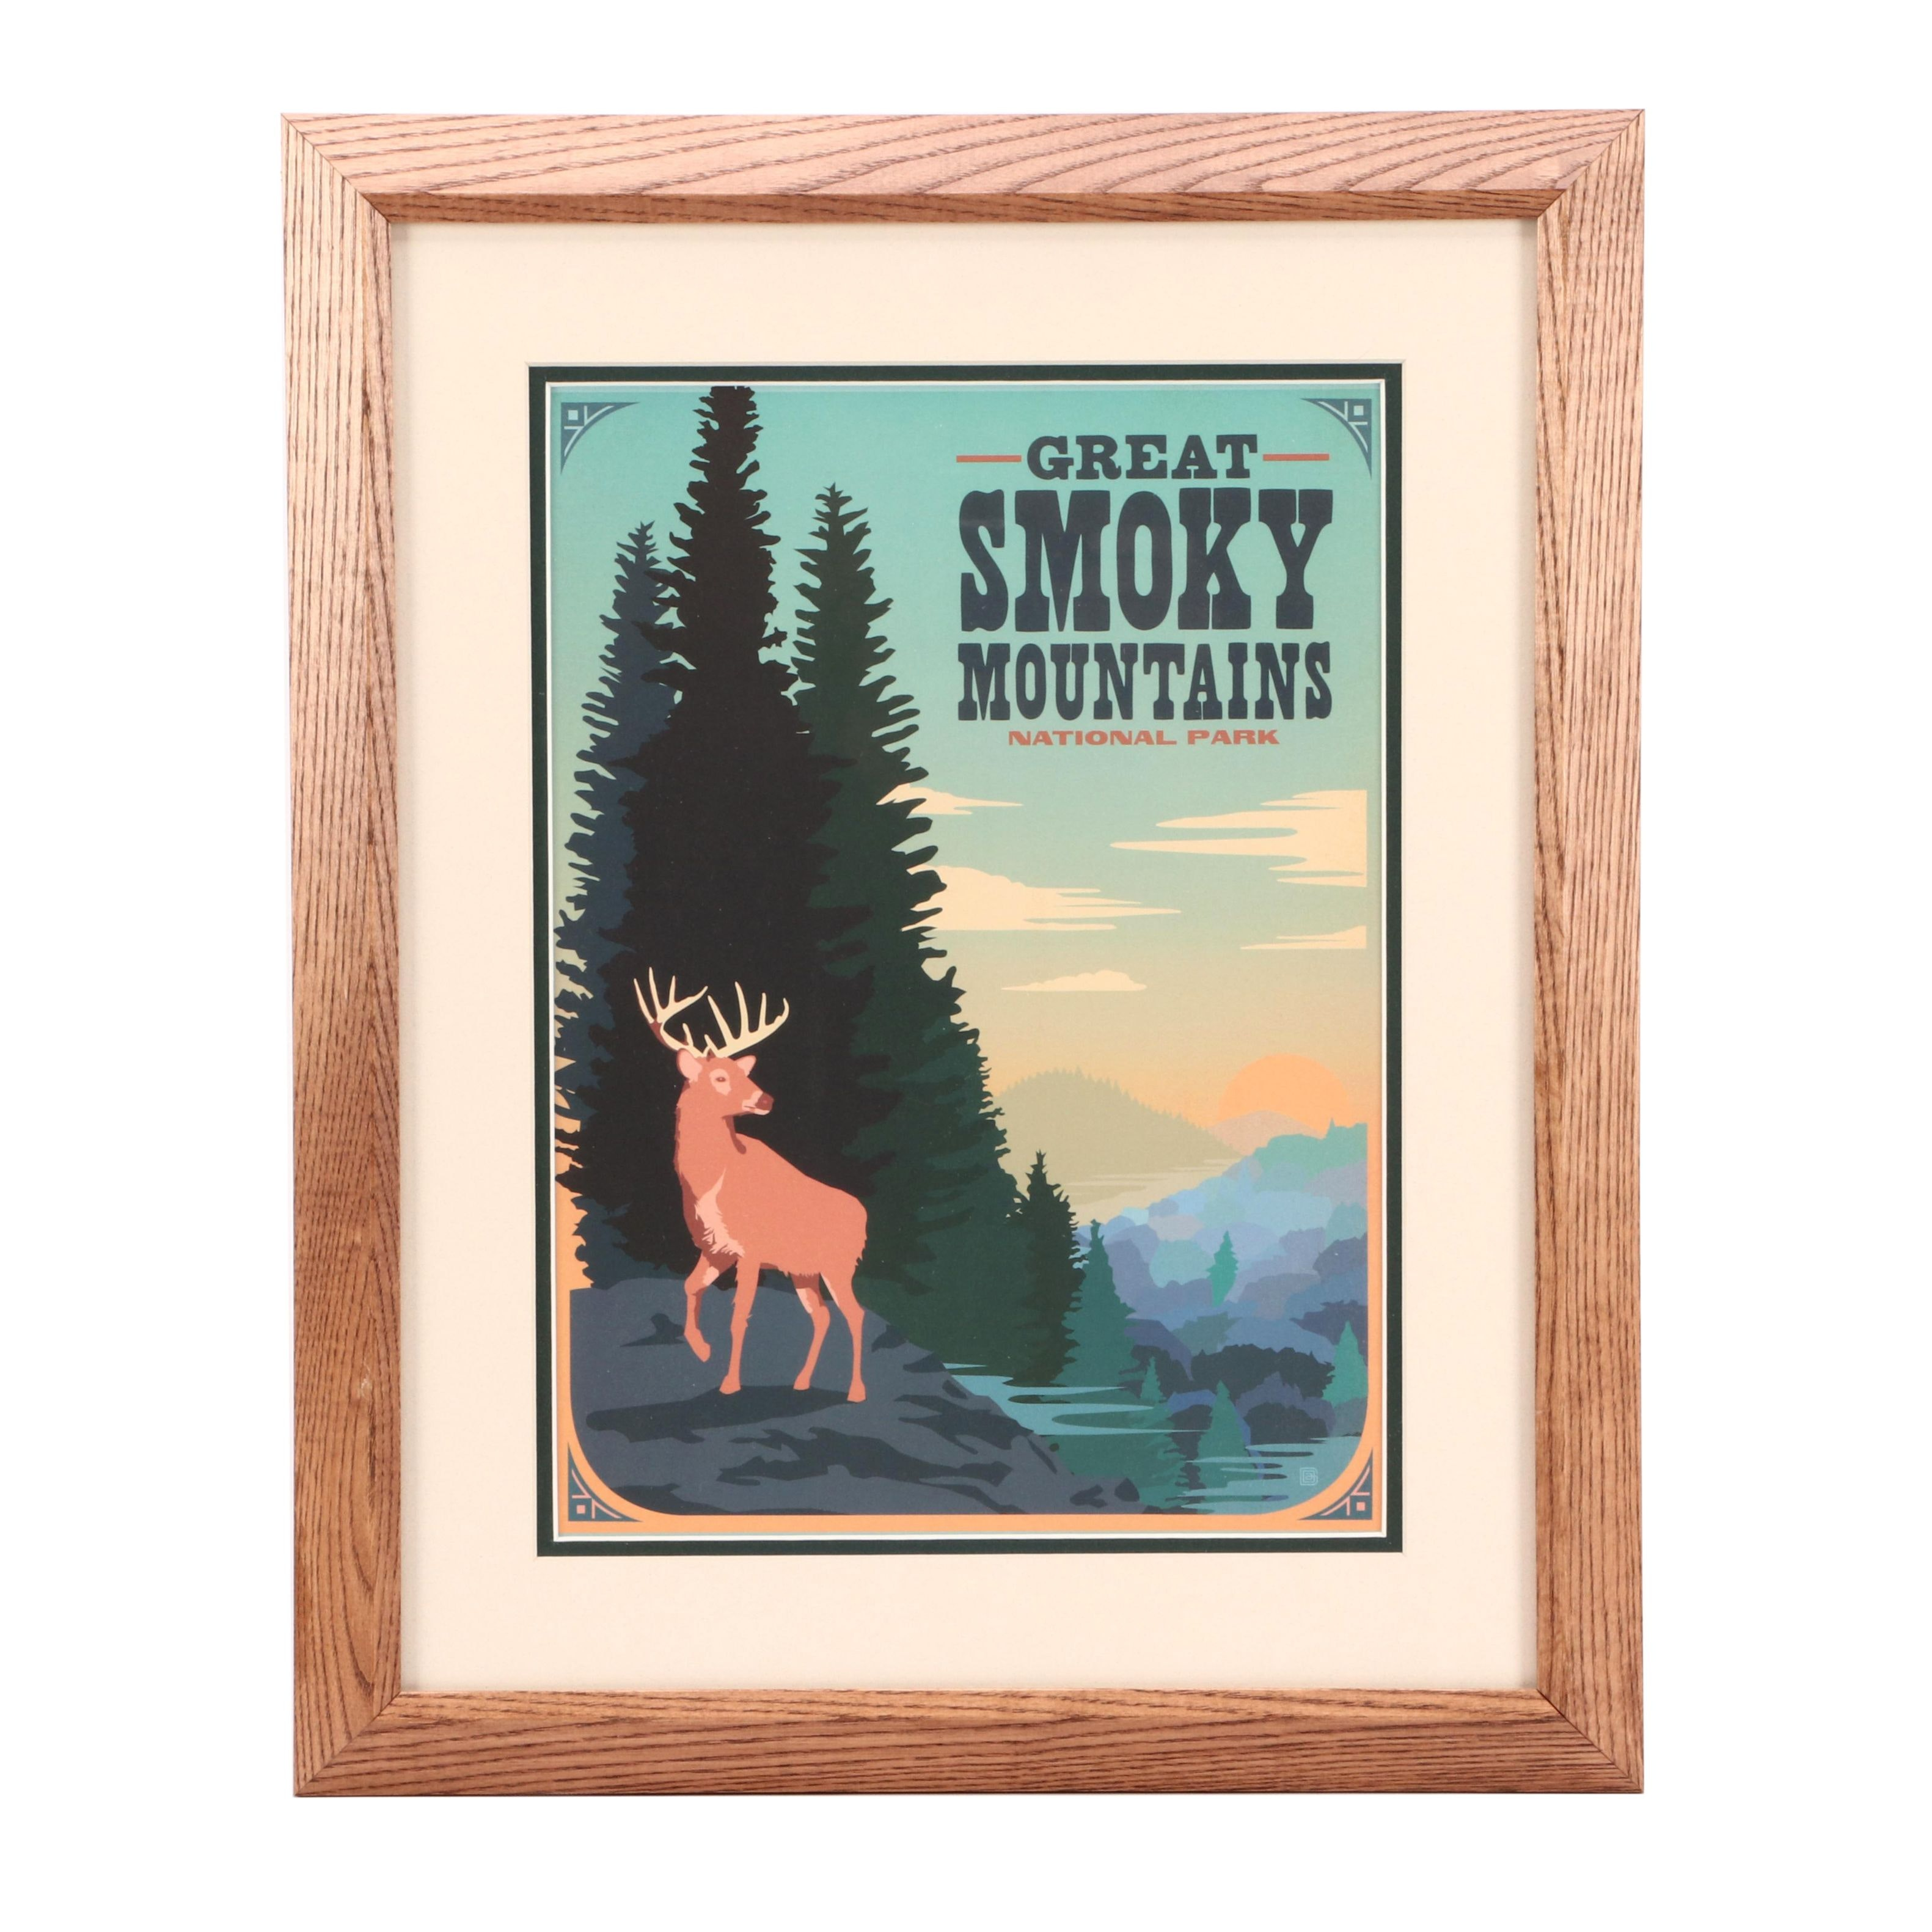 Vintage-Style Offset Lithograph Great Smoky Mountains Travel Poster